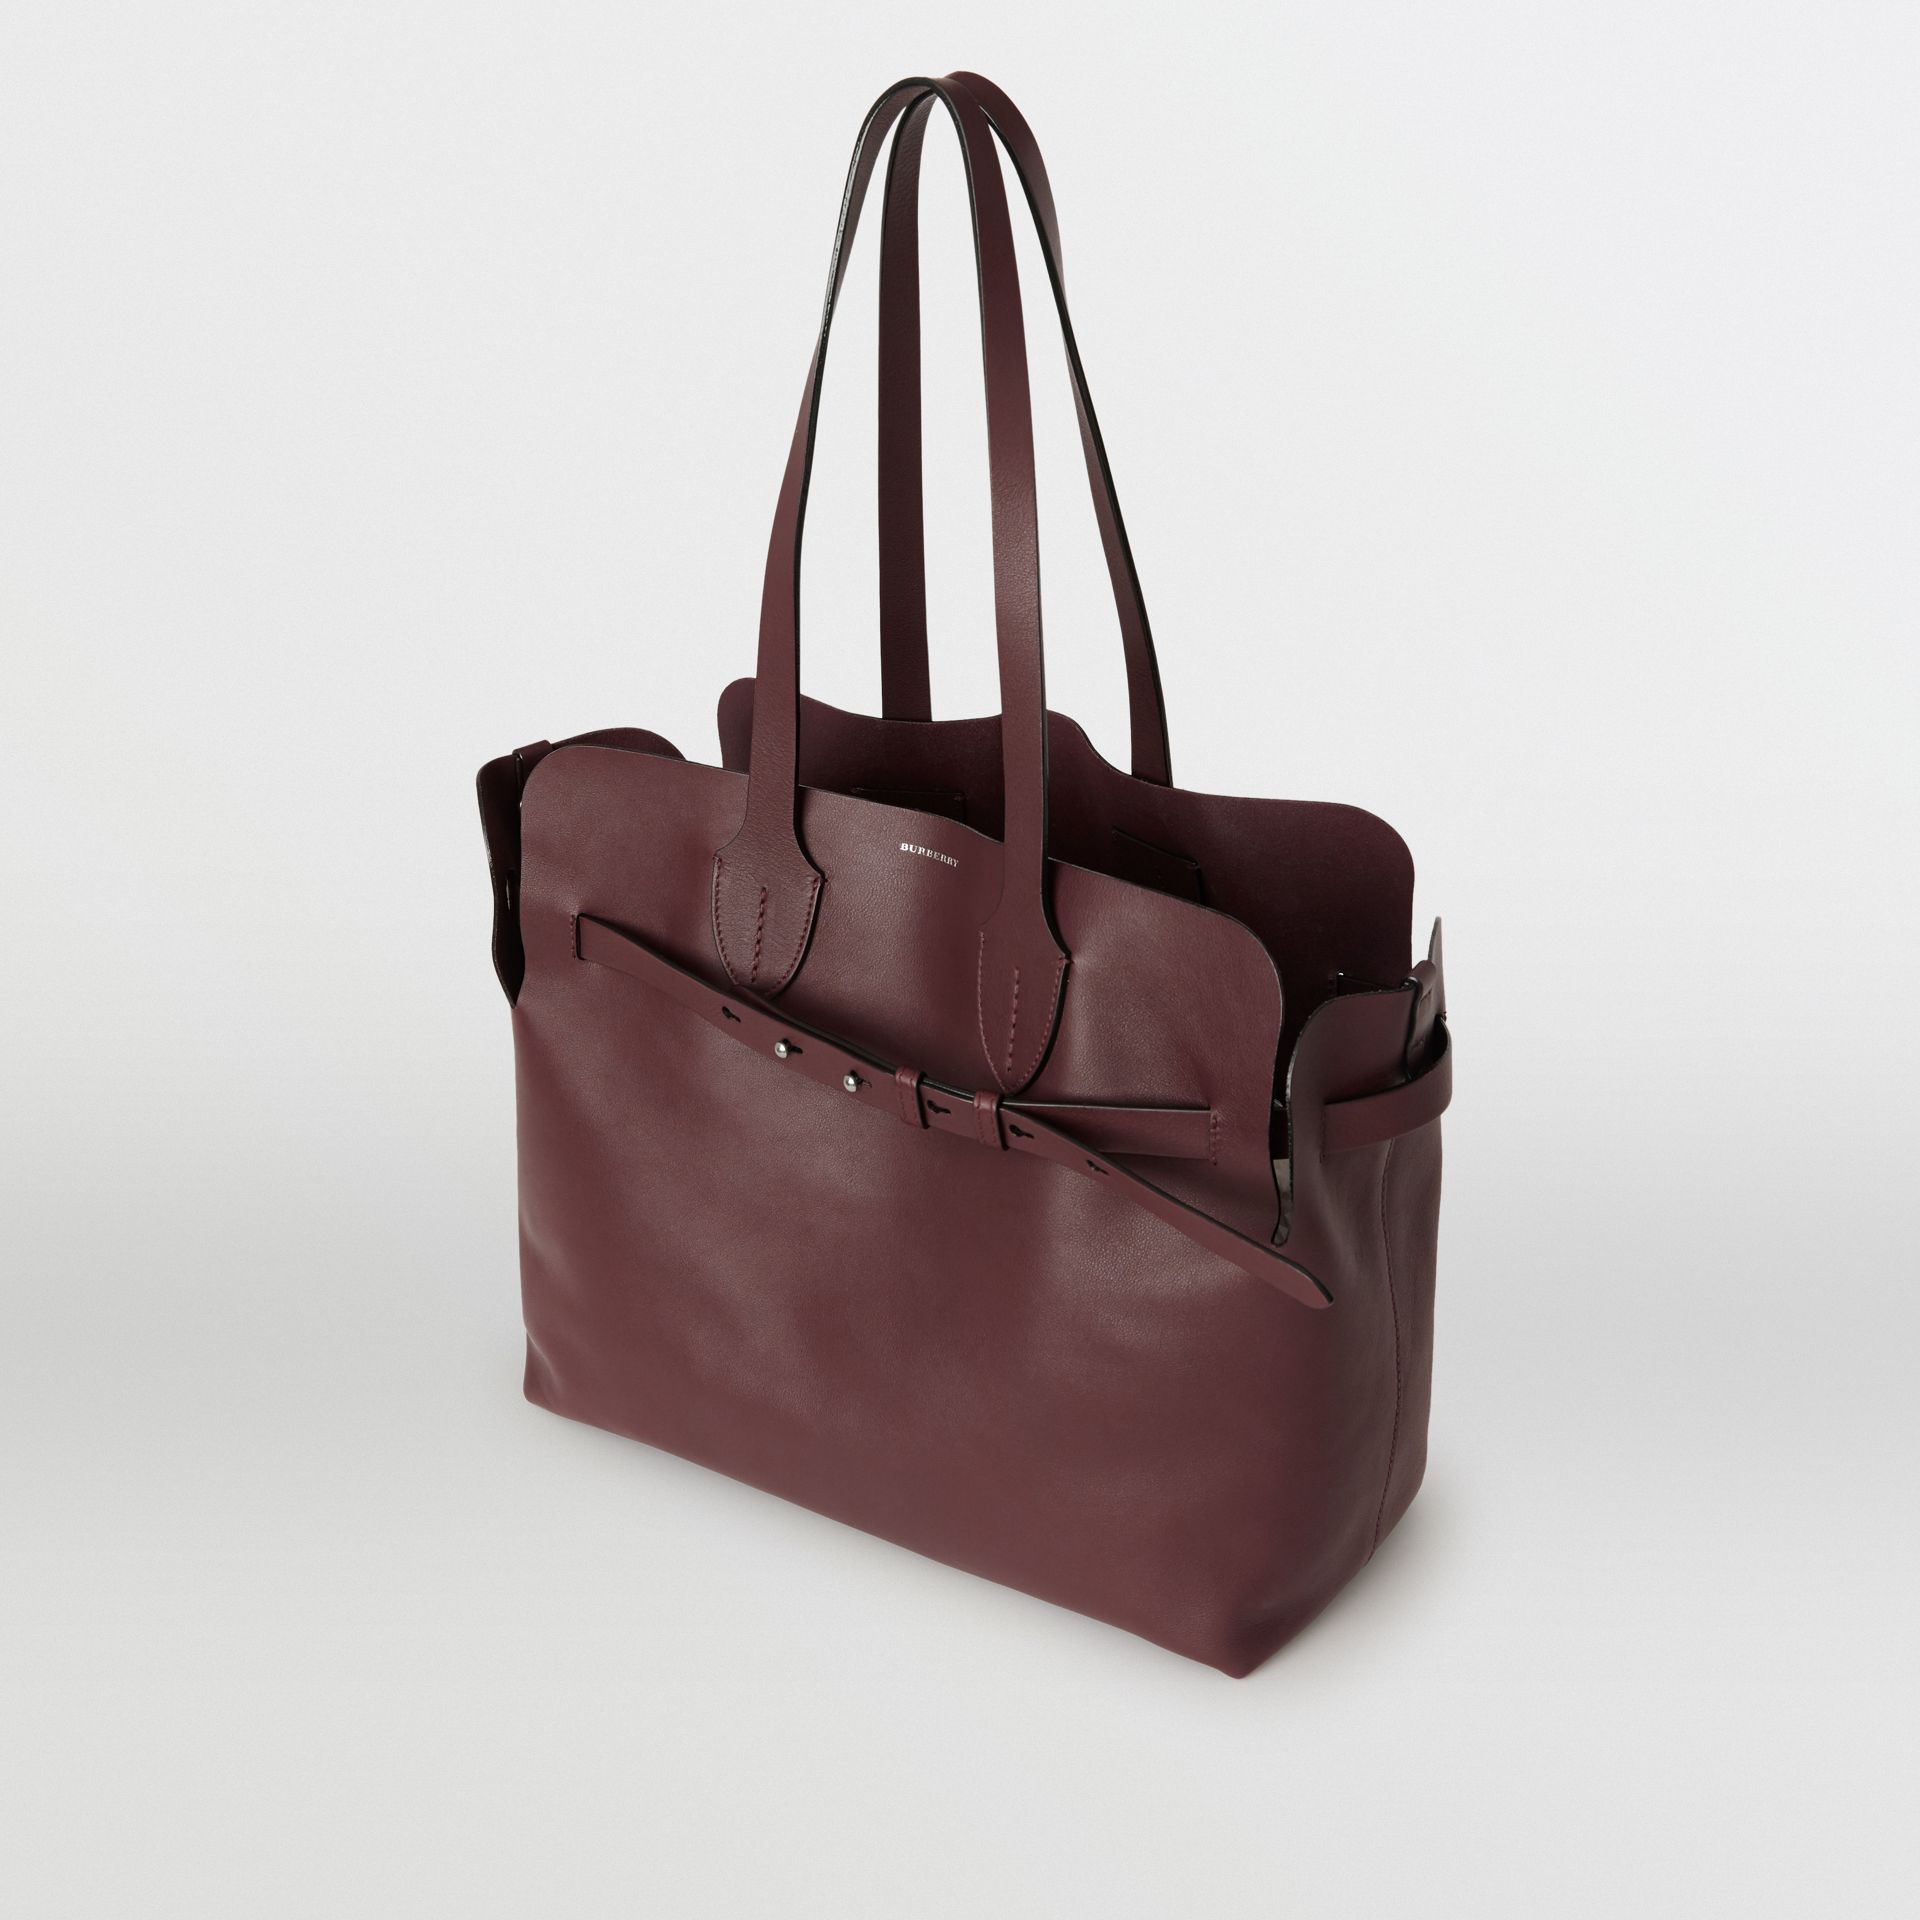 Sac The Belt moyen en cuir doux (Bordeaux Intense) - Femme | Burberry Canada - photo de la galerie 2